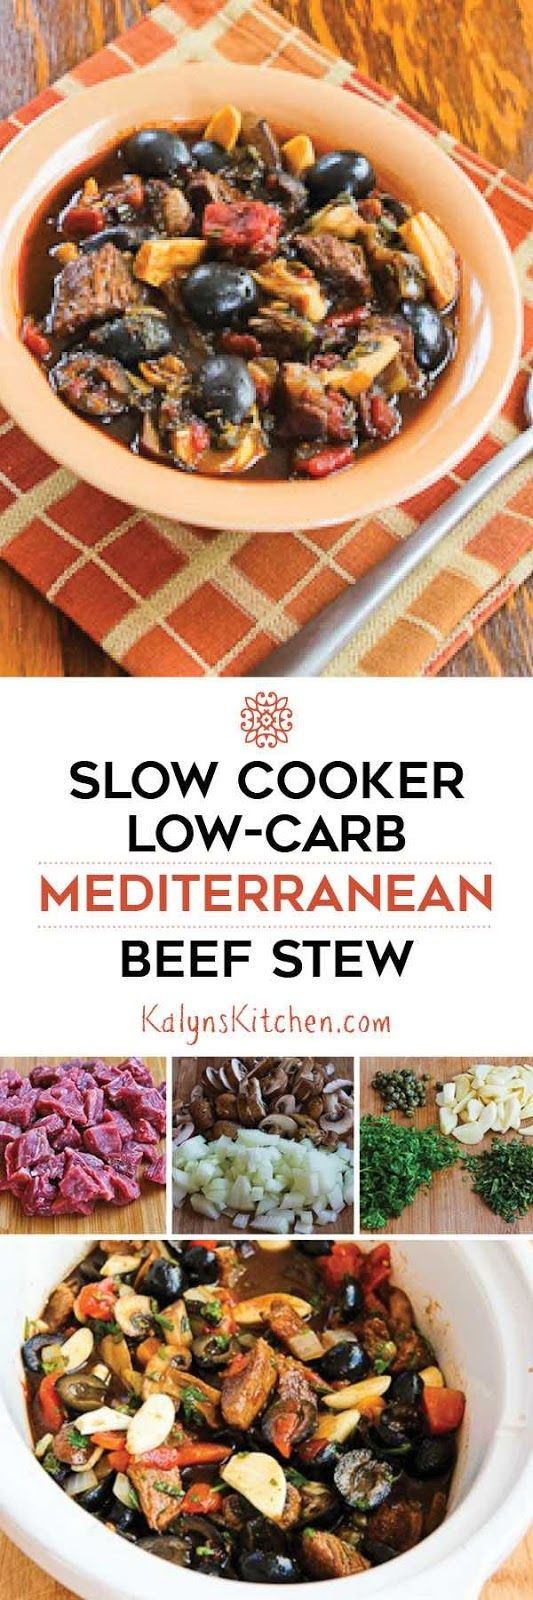 Slow Cooker Mediterranean Beef Stew with Rosemary and Balsamic Vinegar is an easy delicious meal from the slow cooker. This can cook all day while you're at work.   (Low-Carb, Gluten-Free, Paleo) found on KalynsKitchen.com